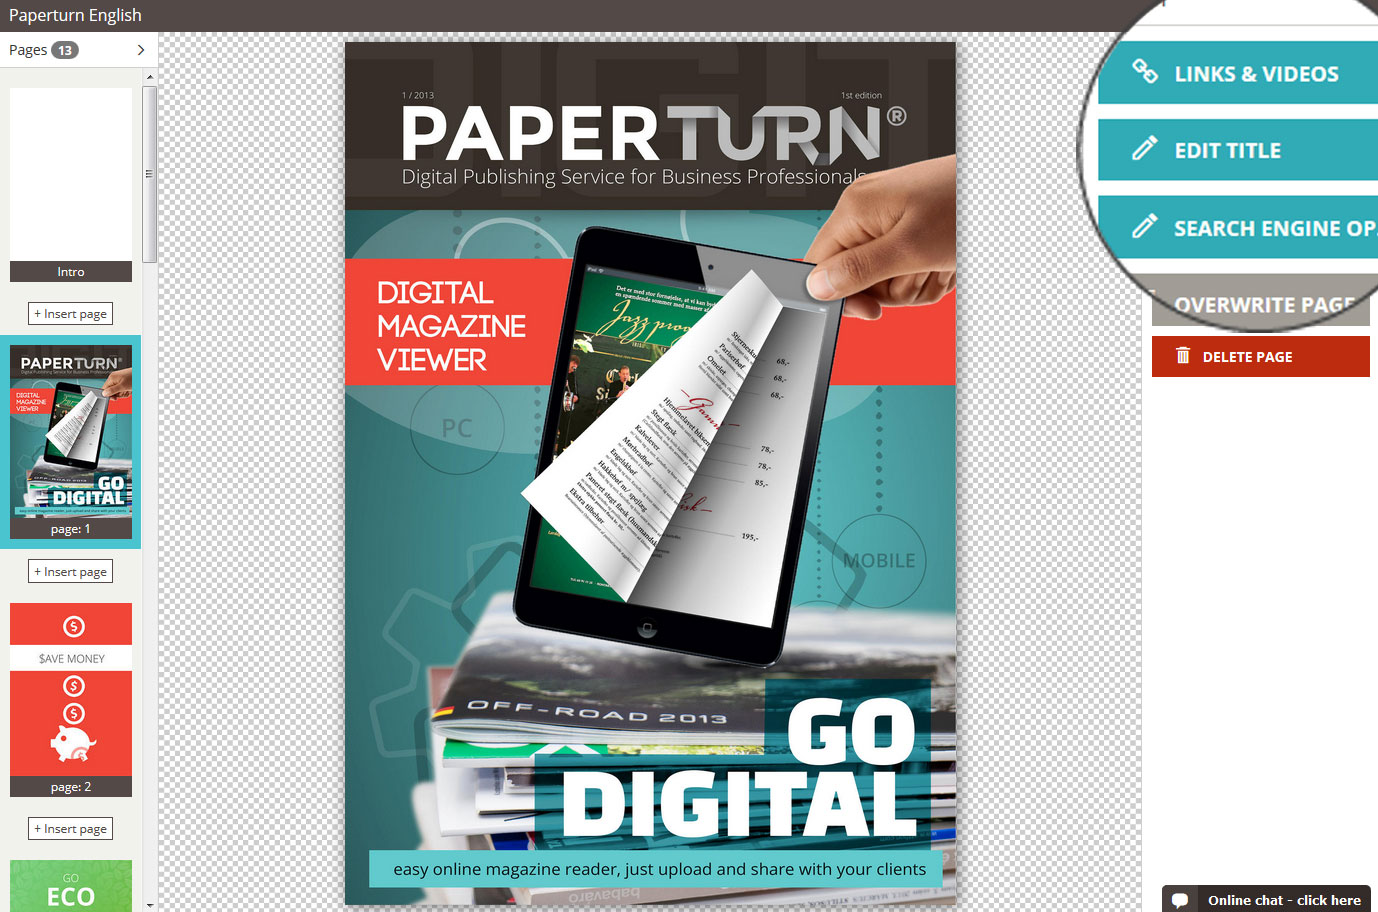 Paperturn menu for links, images and SEO